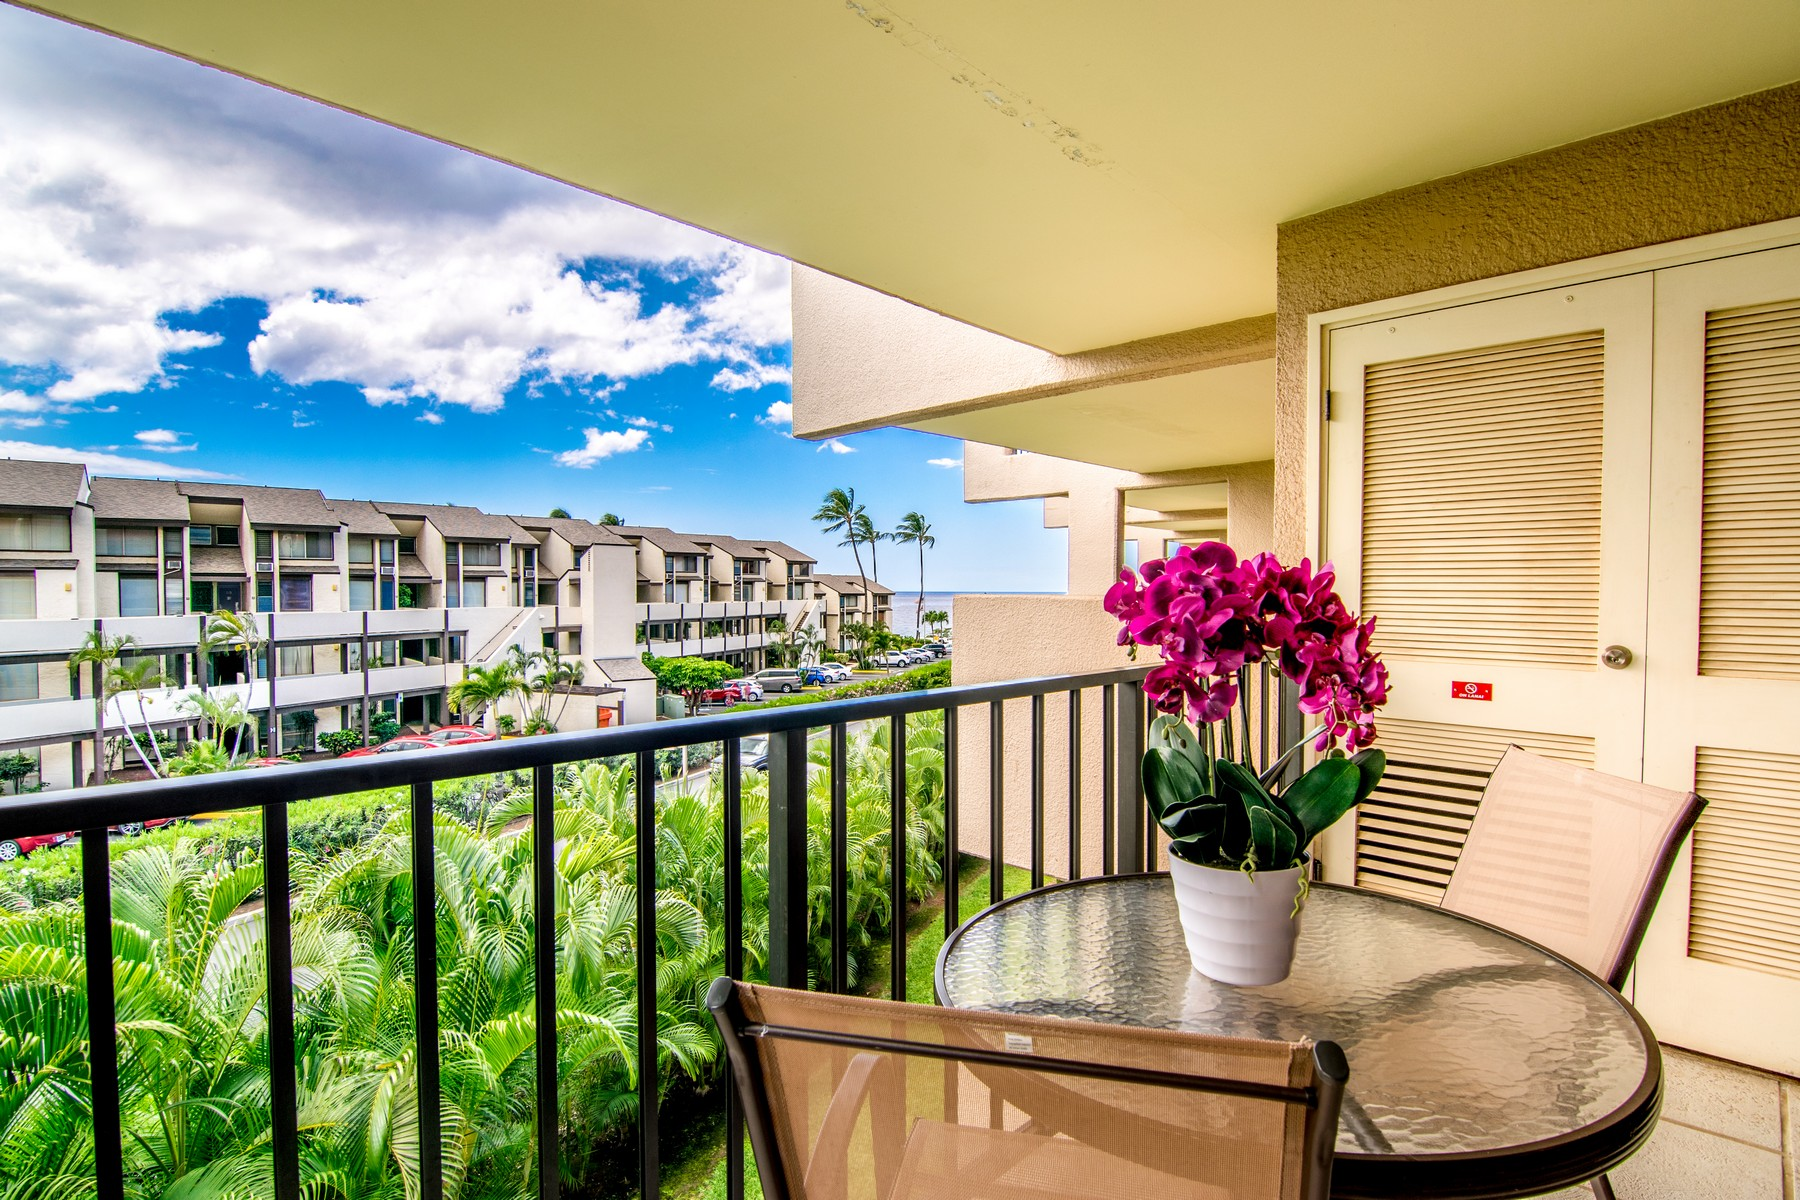 共管式独立产权公寓 为 销售 在 Successful Short Term Rental in South Maui 2695 South Kihei Road, Kamaole Sands 9-306 基黑, 夏威夷, 96753 美国